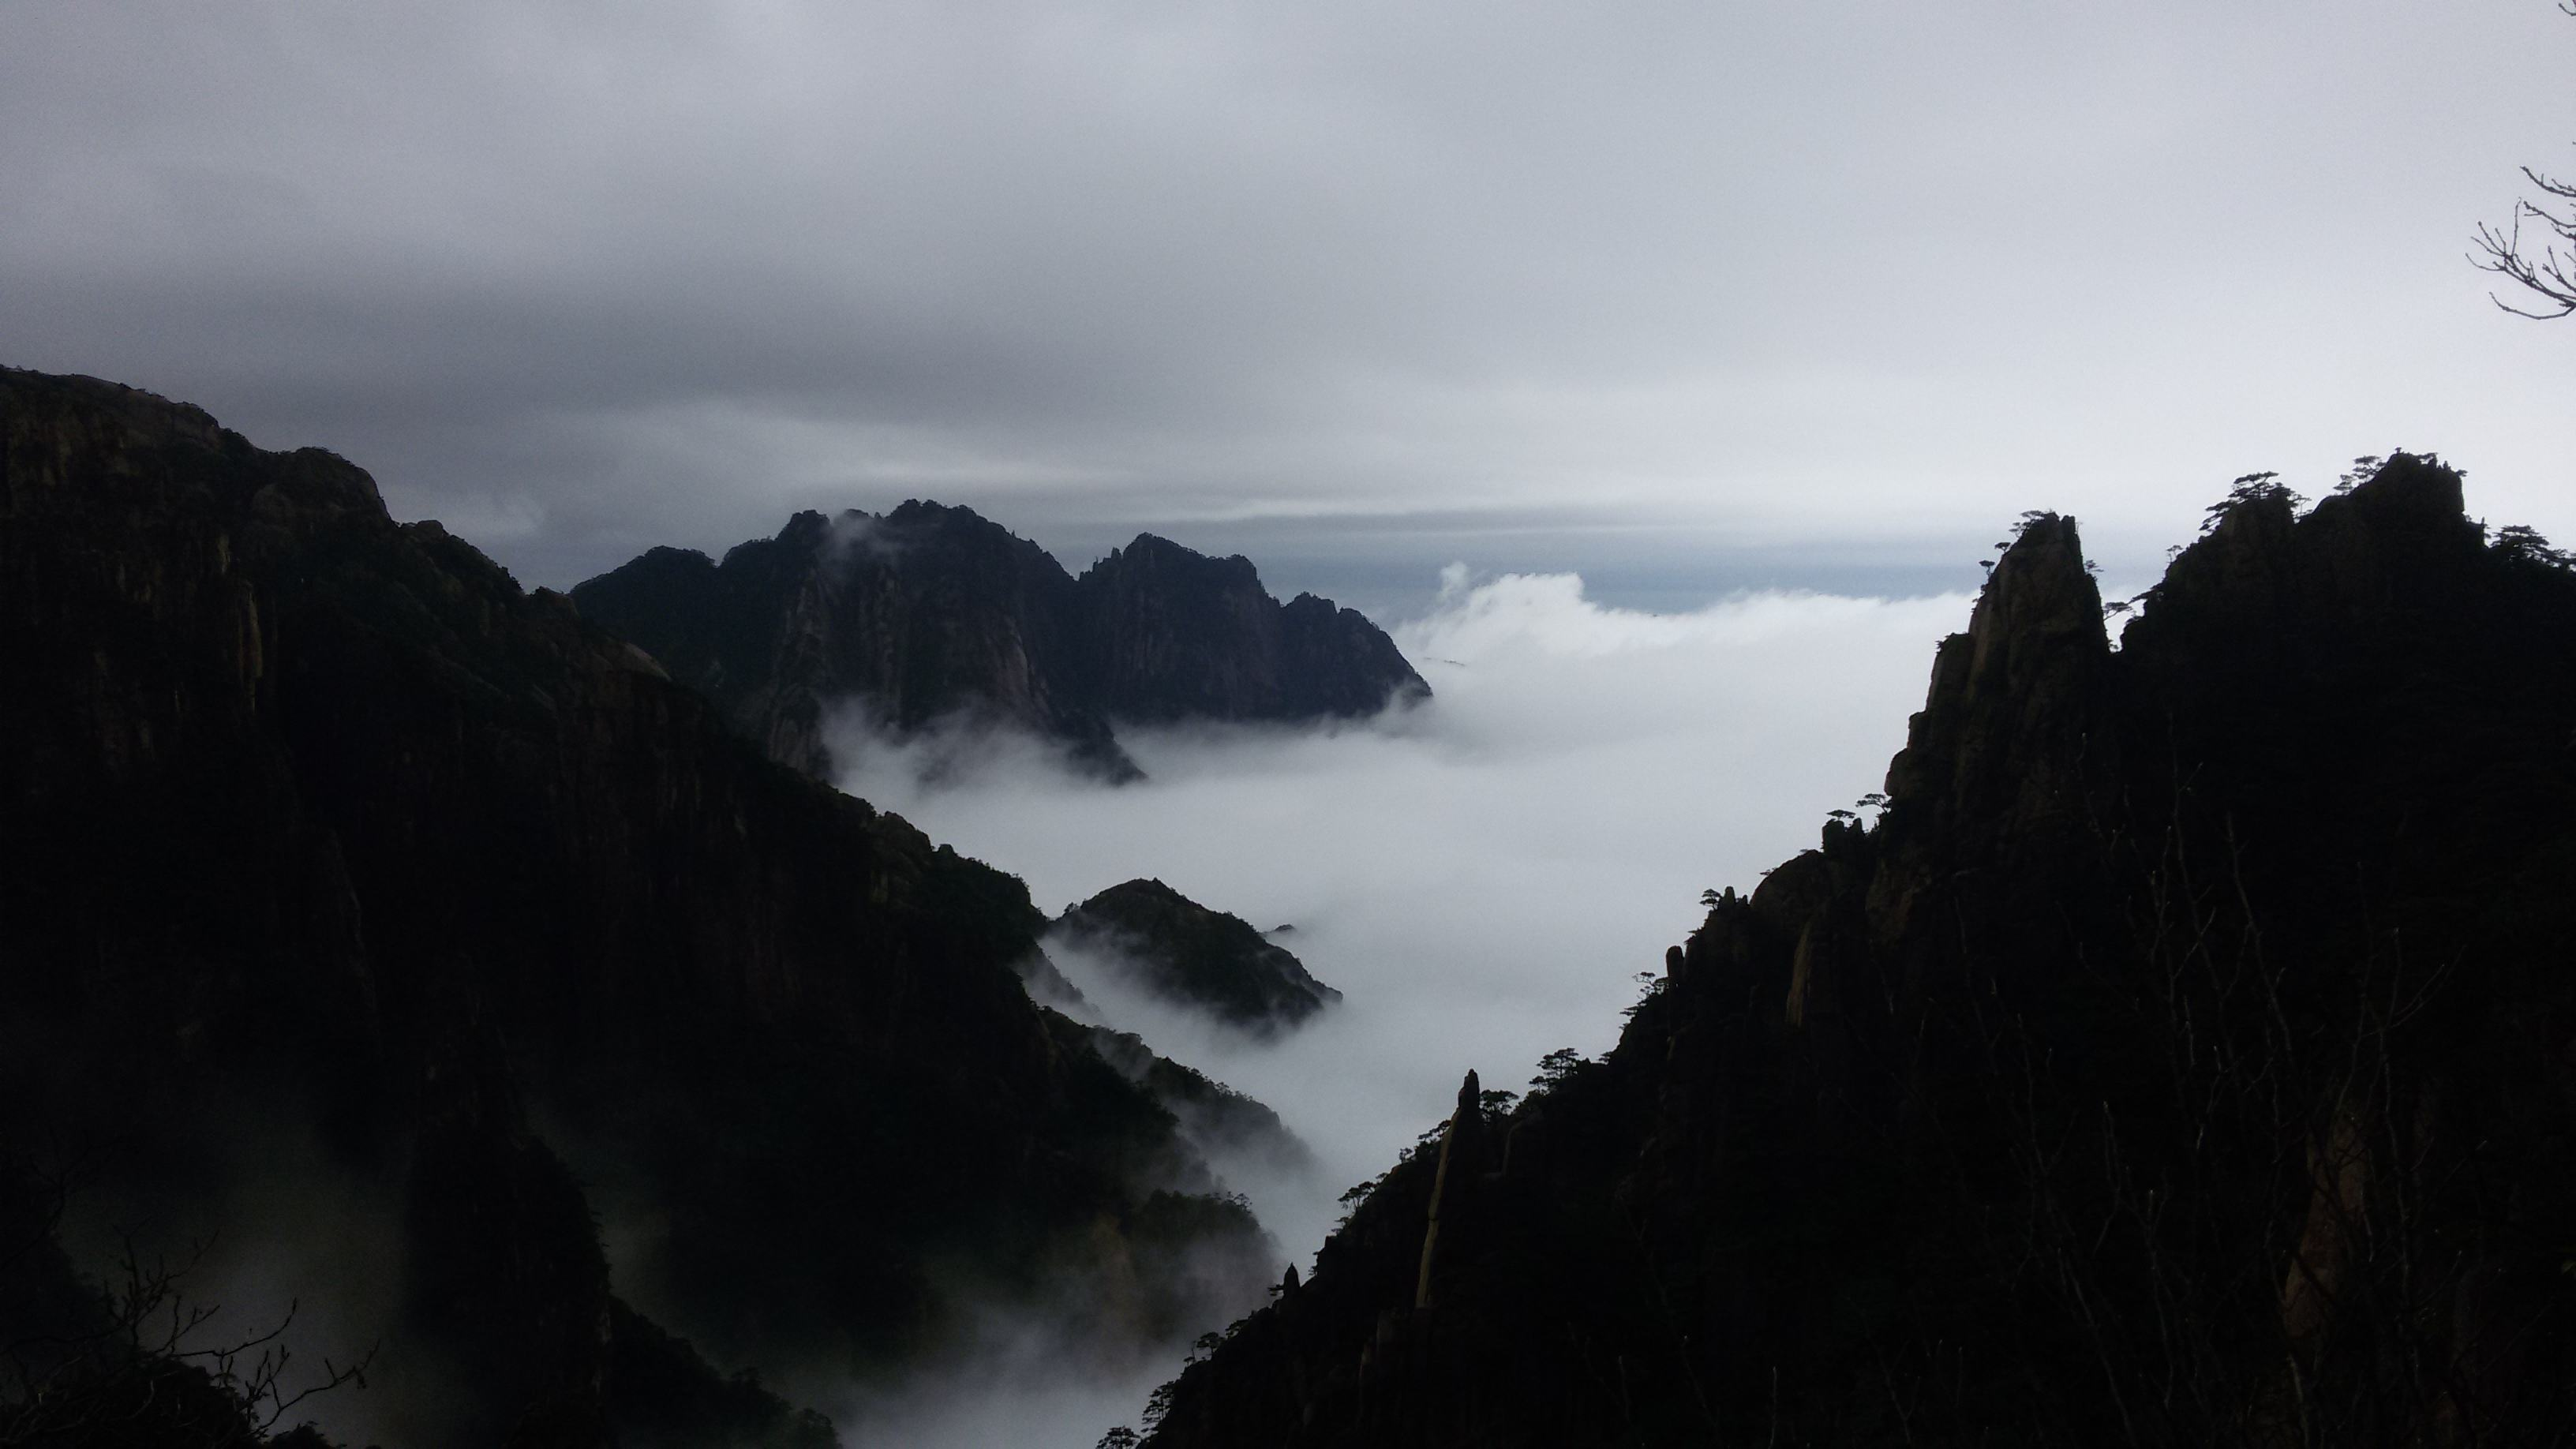 mountains of huangshan, China - trip to China